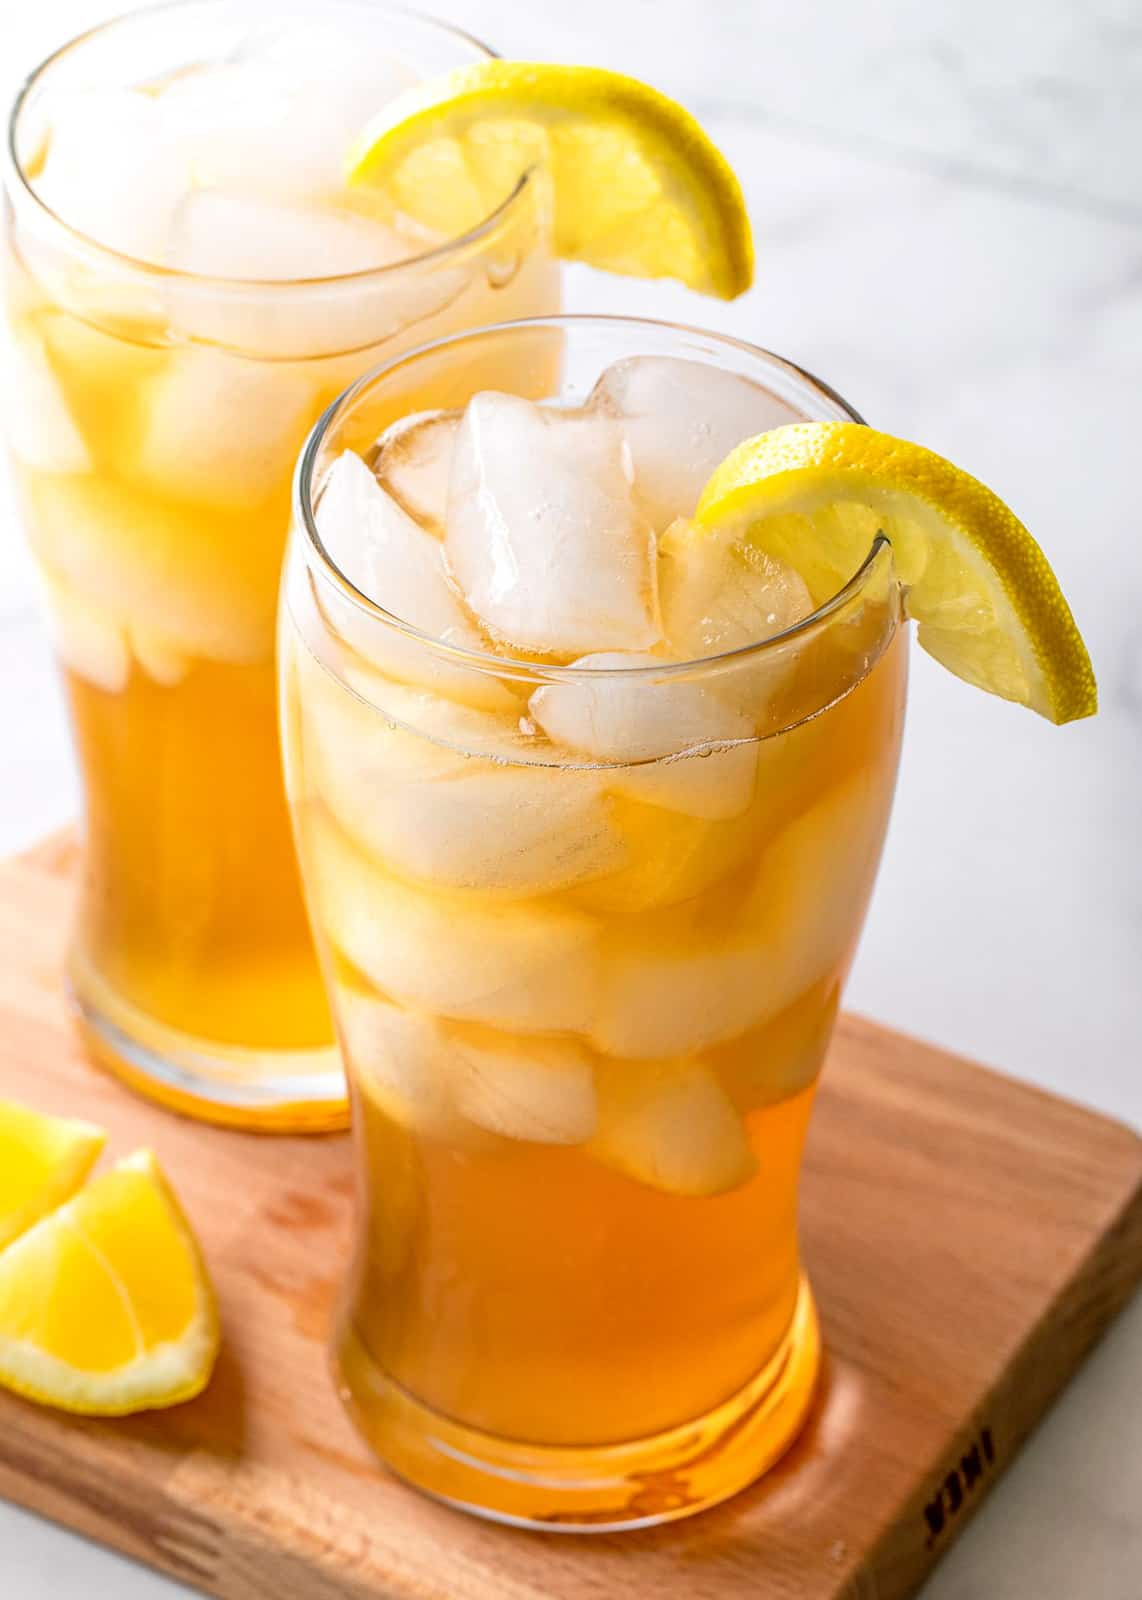 Slightly overhead photos of two Arnold Palmer Drinks with lemons and ice on wooden board